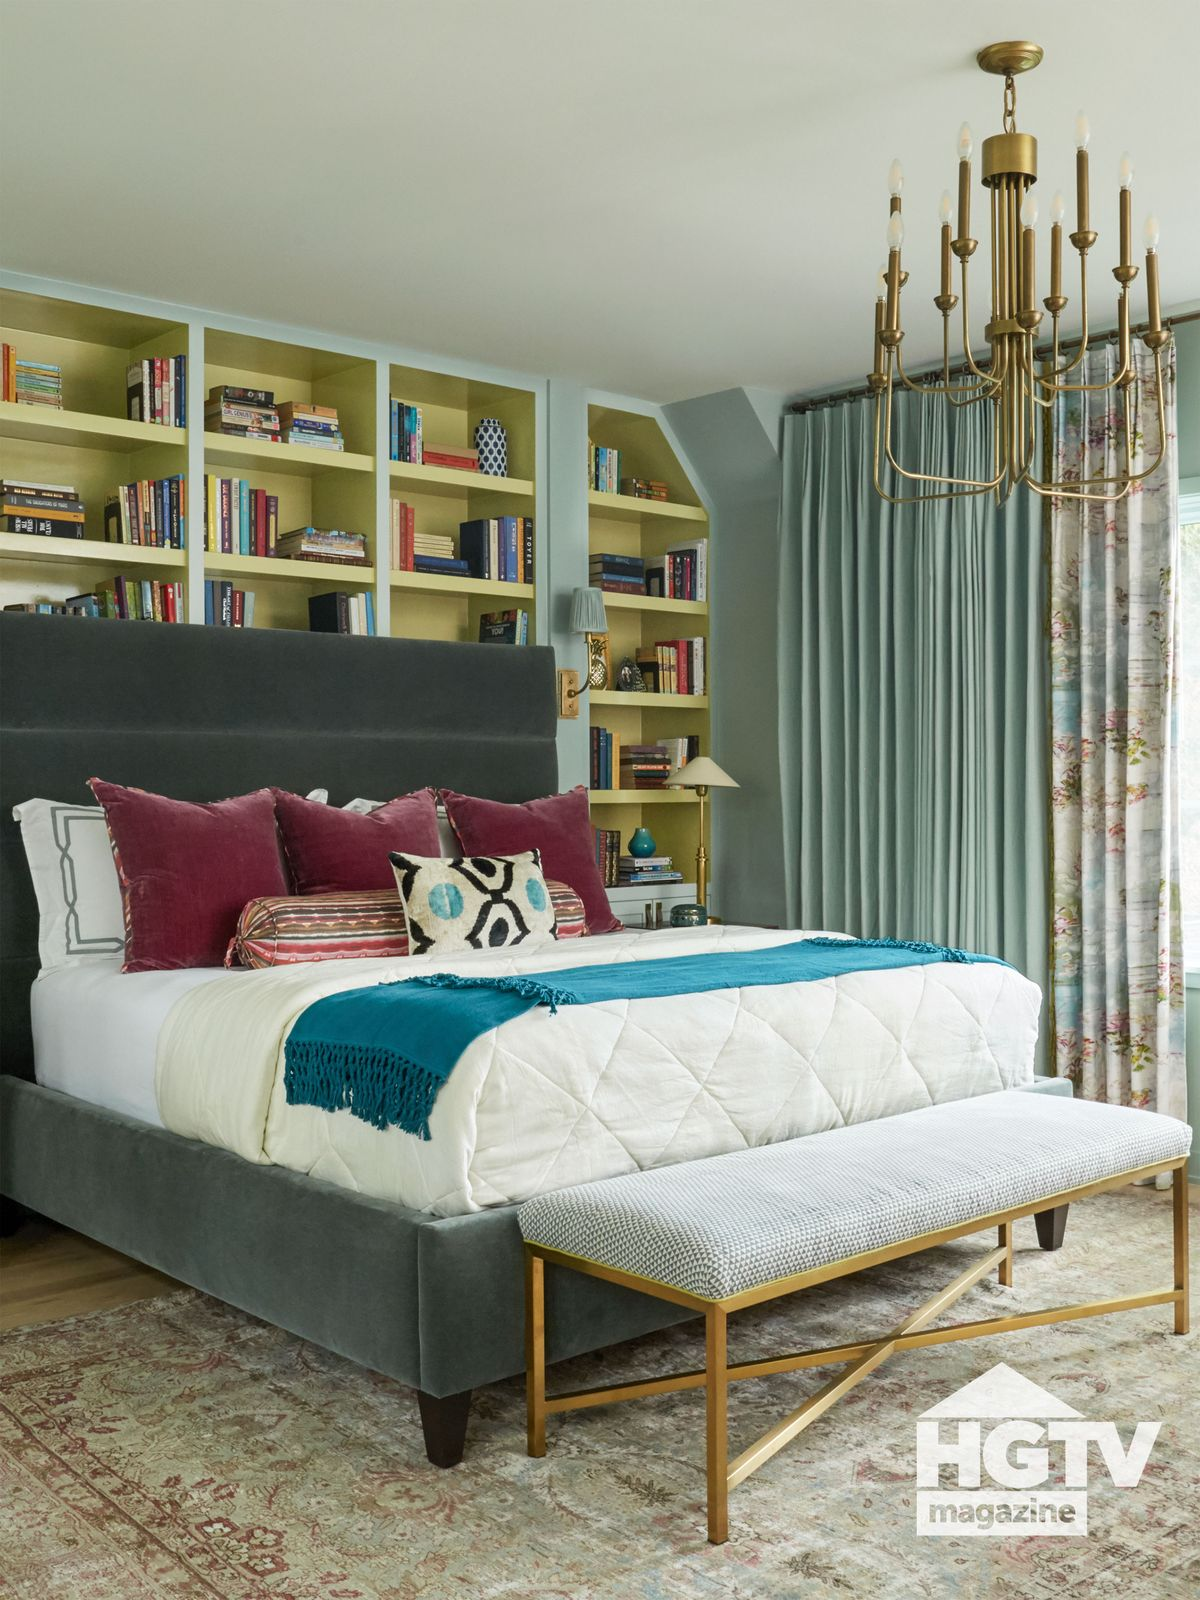 A green and blue master bedroom from HGTV Magazine